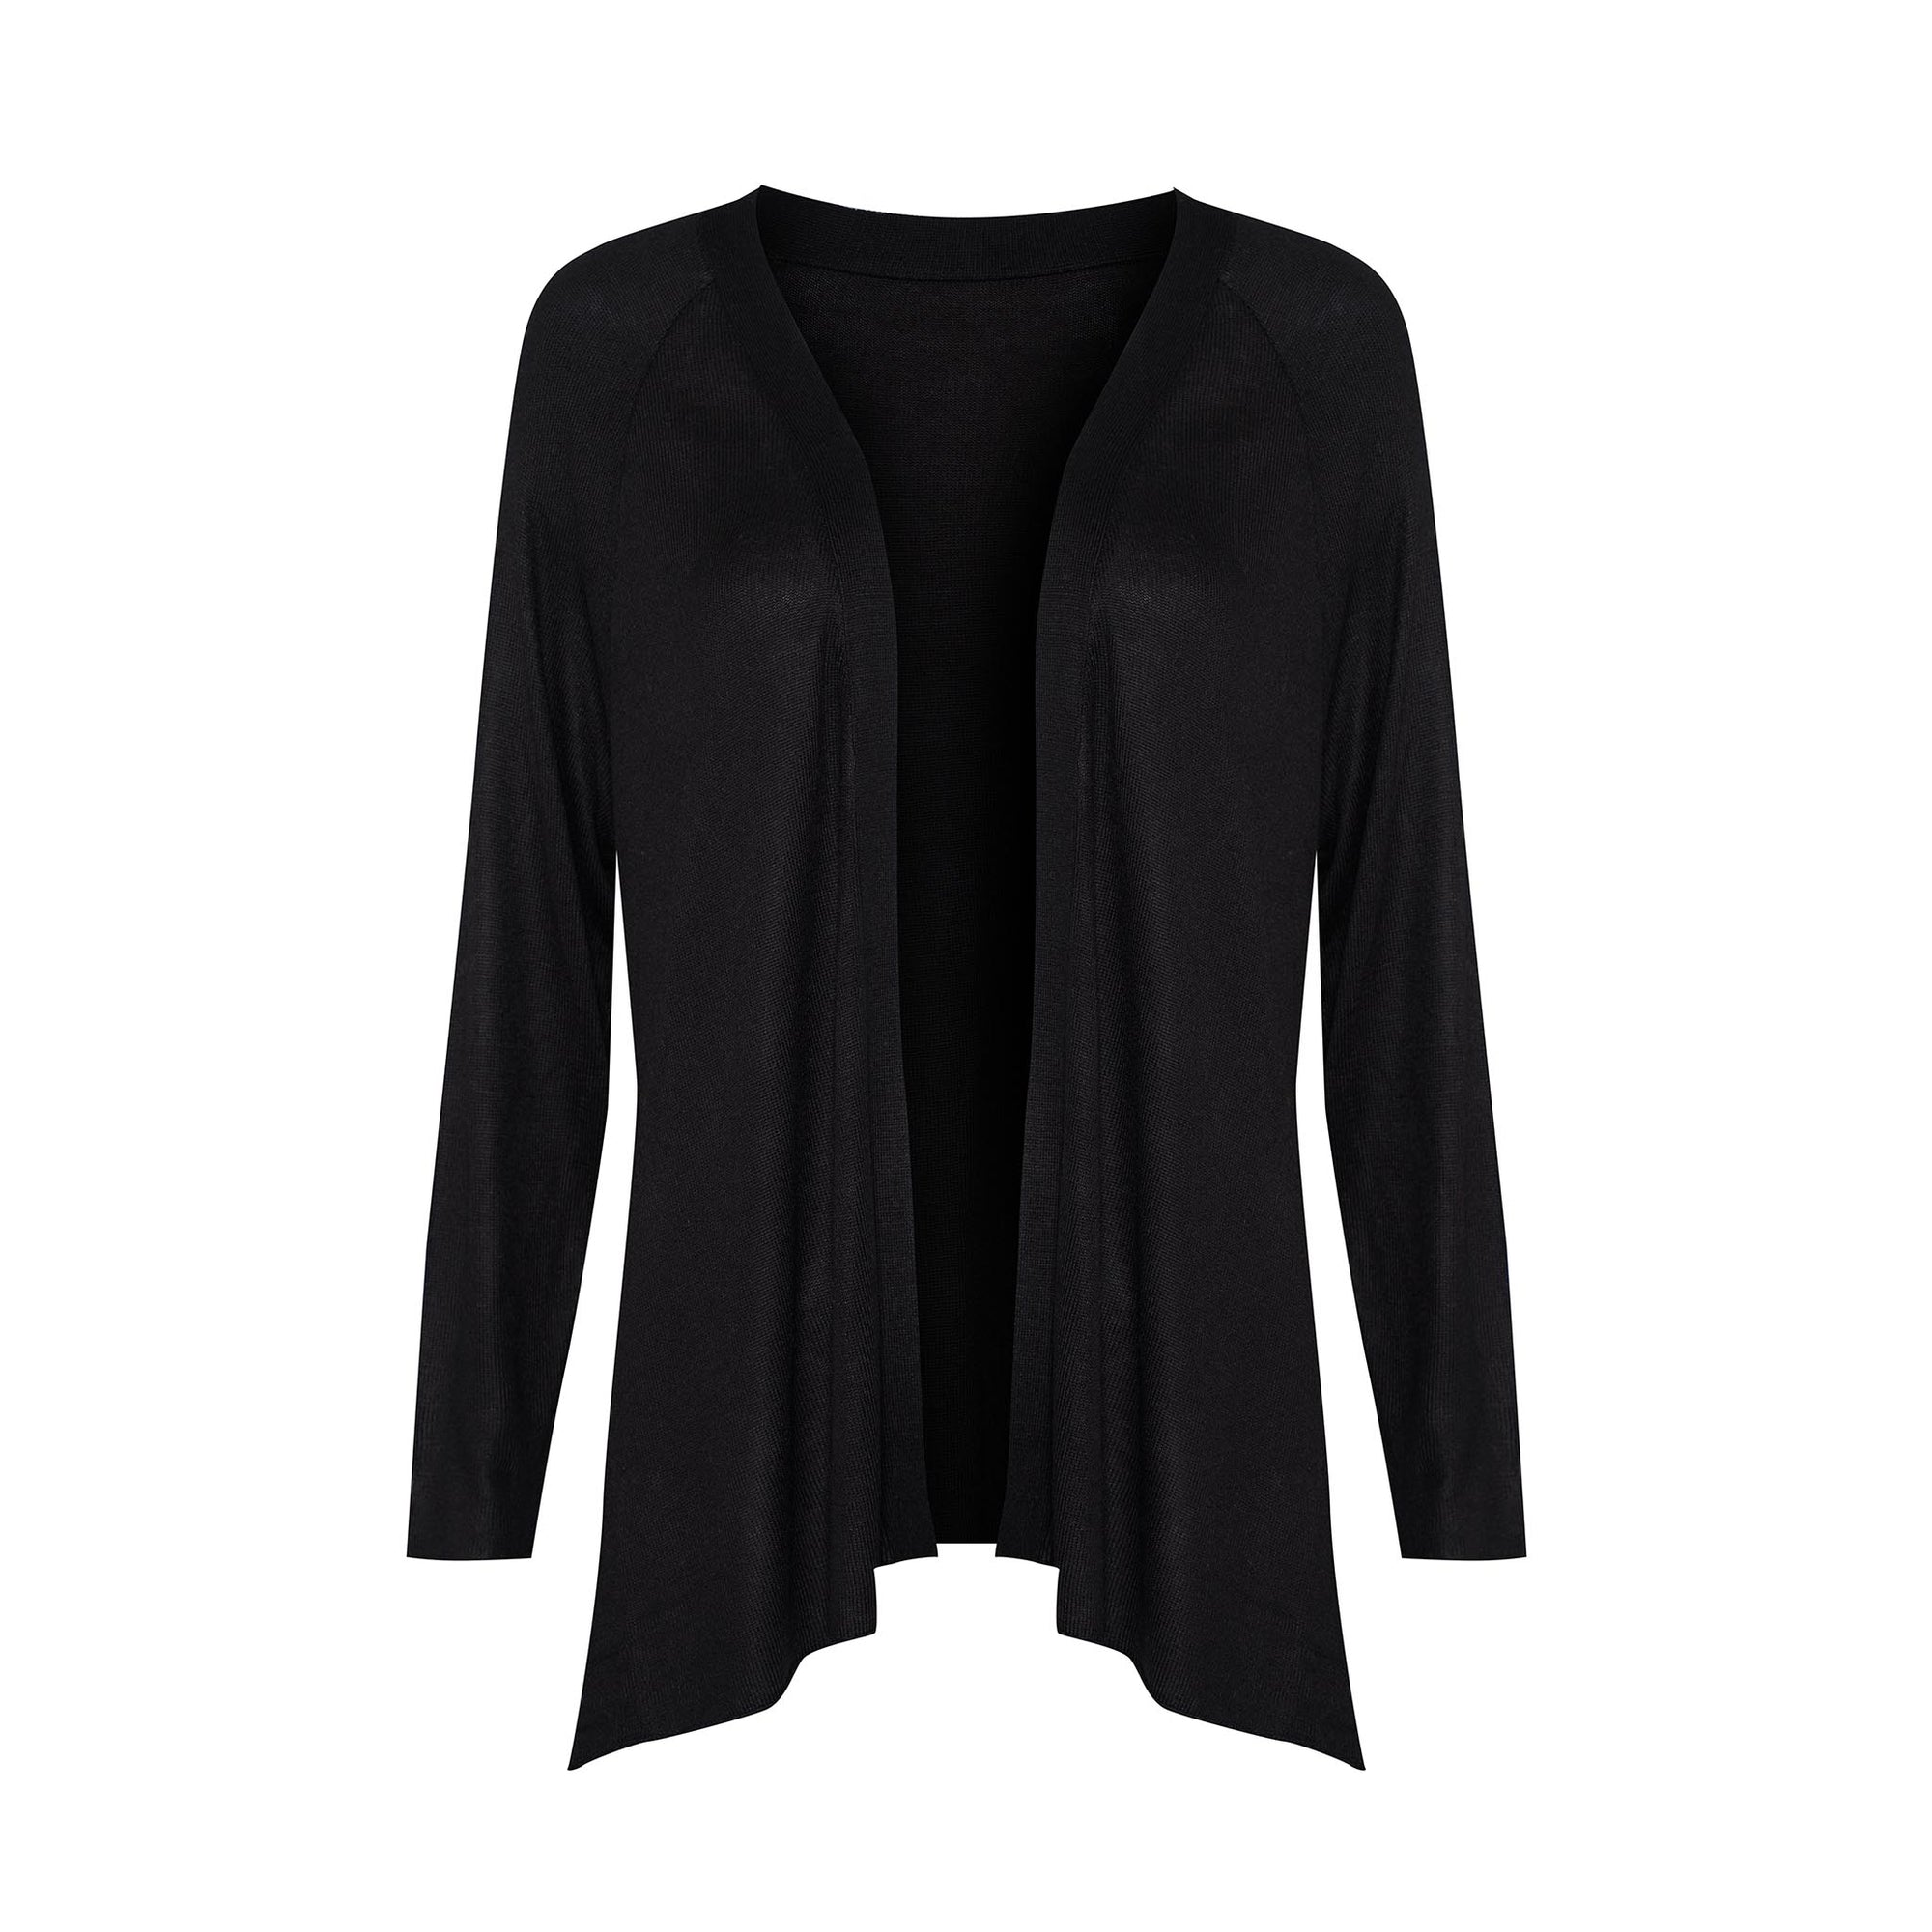 Lou Lou Australia Bamboo Patsy Cashmere Jacket in Black